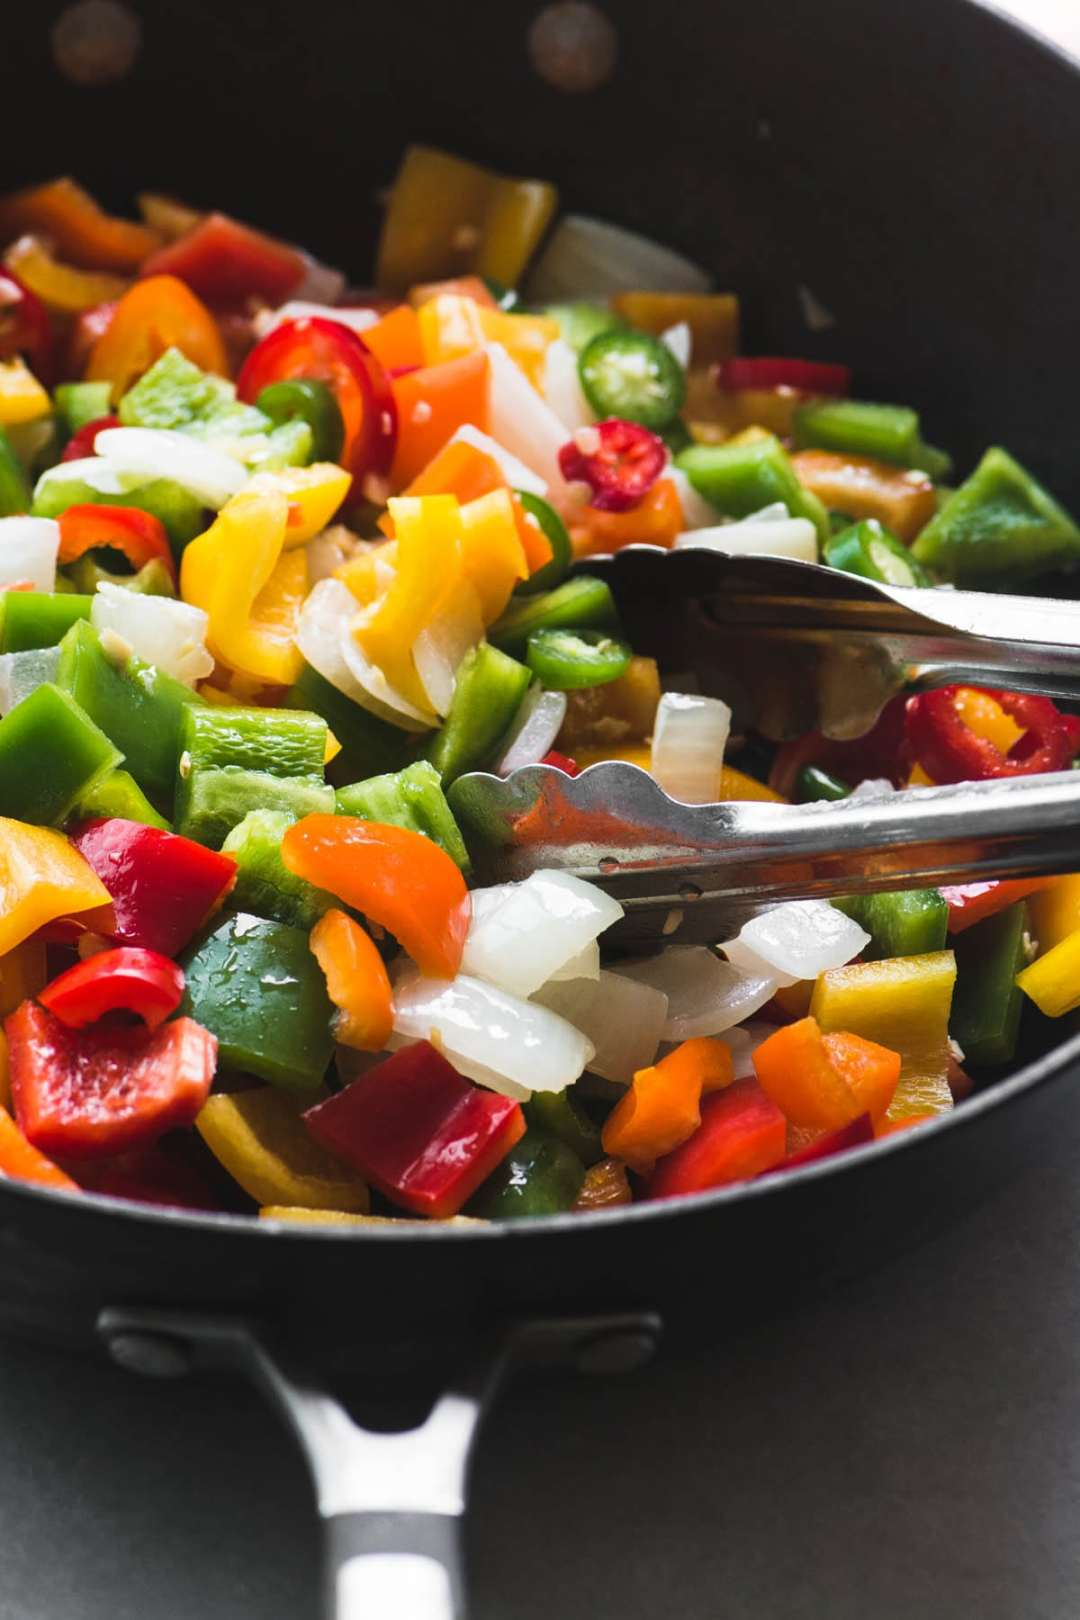 Stir frying colorful peppers in a wok for Firecracker Chicken